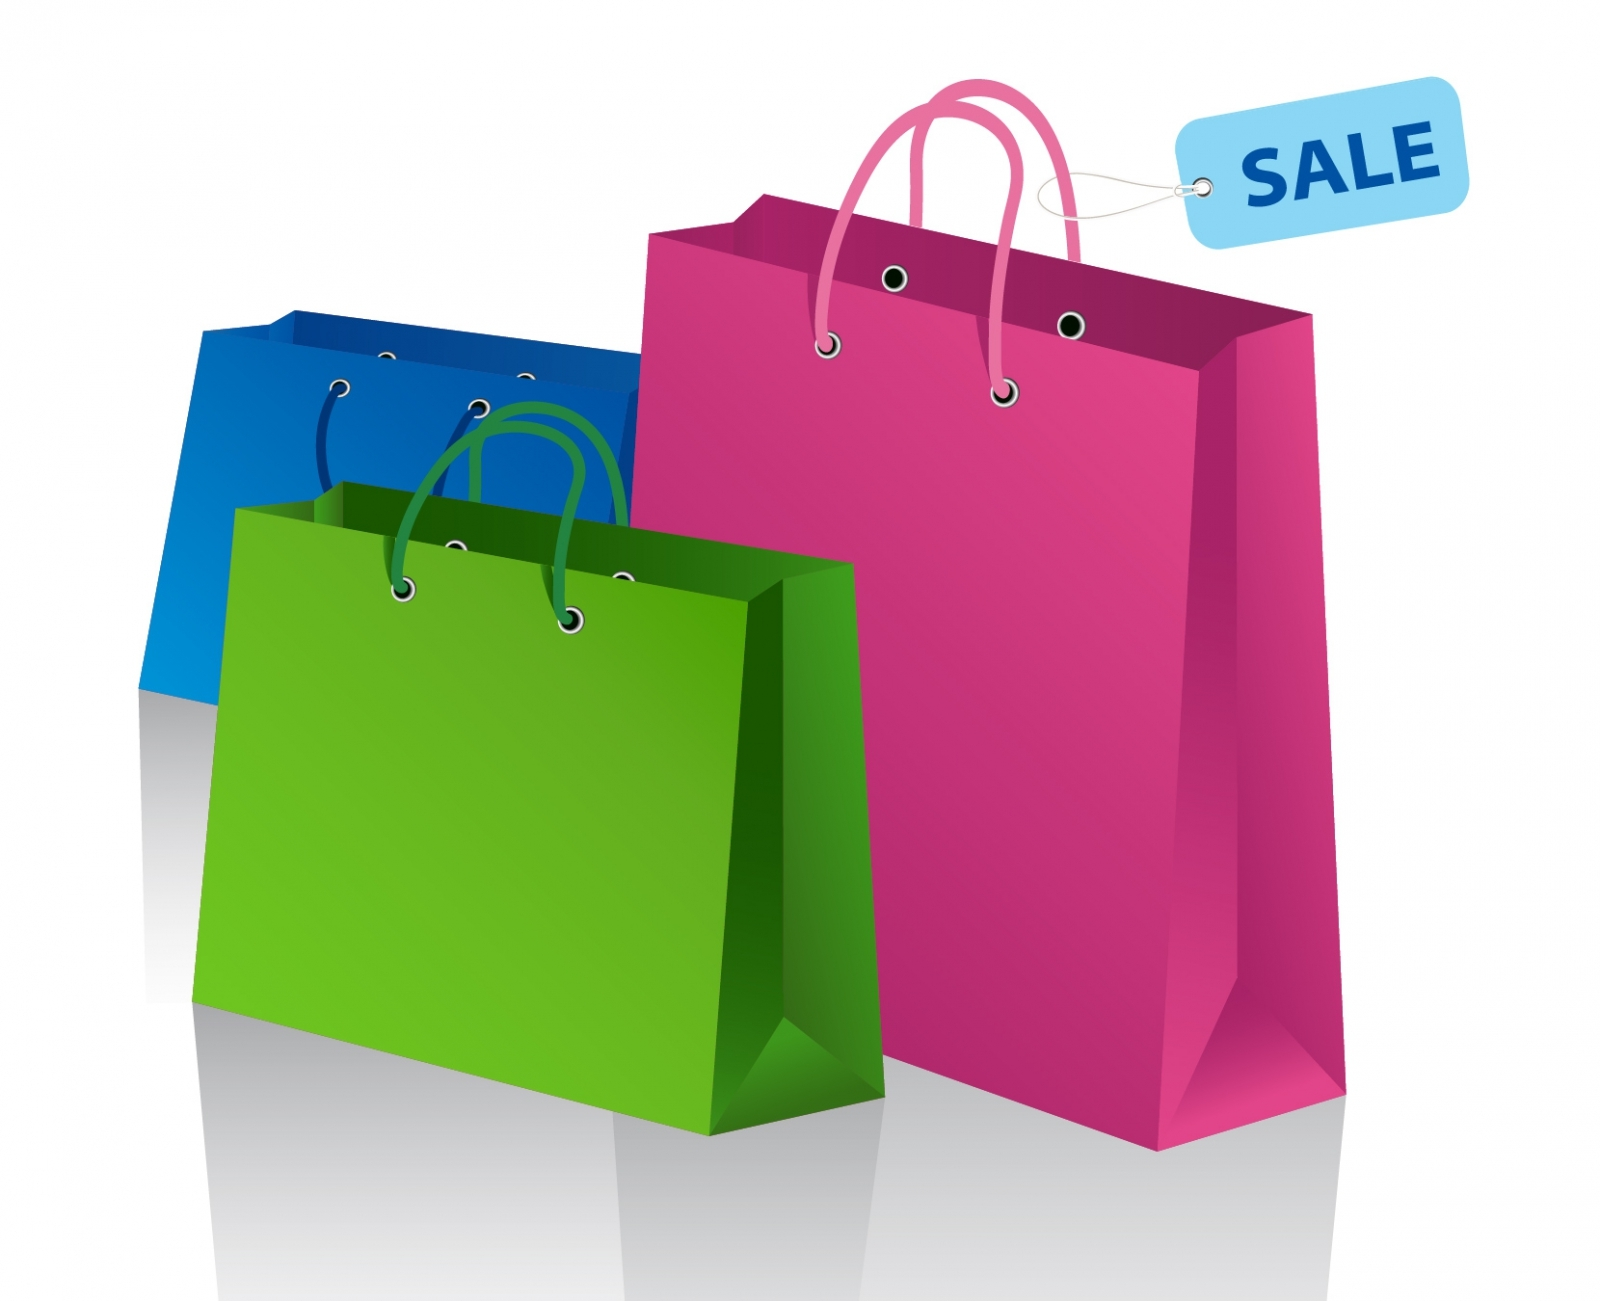 Shopping bags clipart images picture freeuse download Shopping bag clipart Unique Shopping bags shopping bag clip ... picture freeuse download